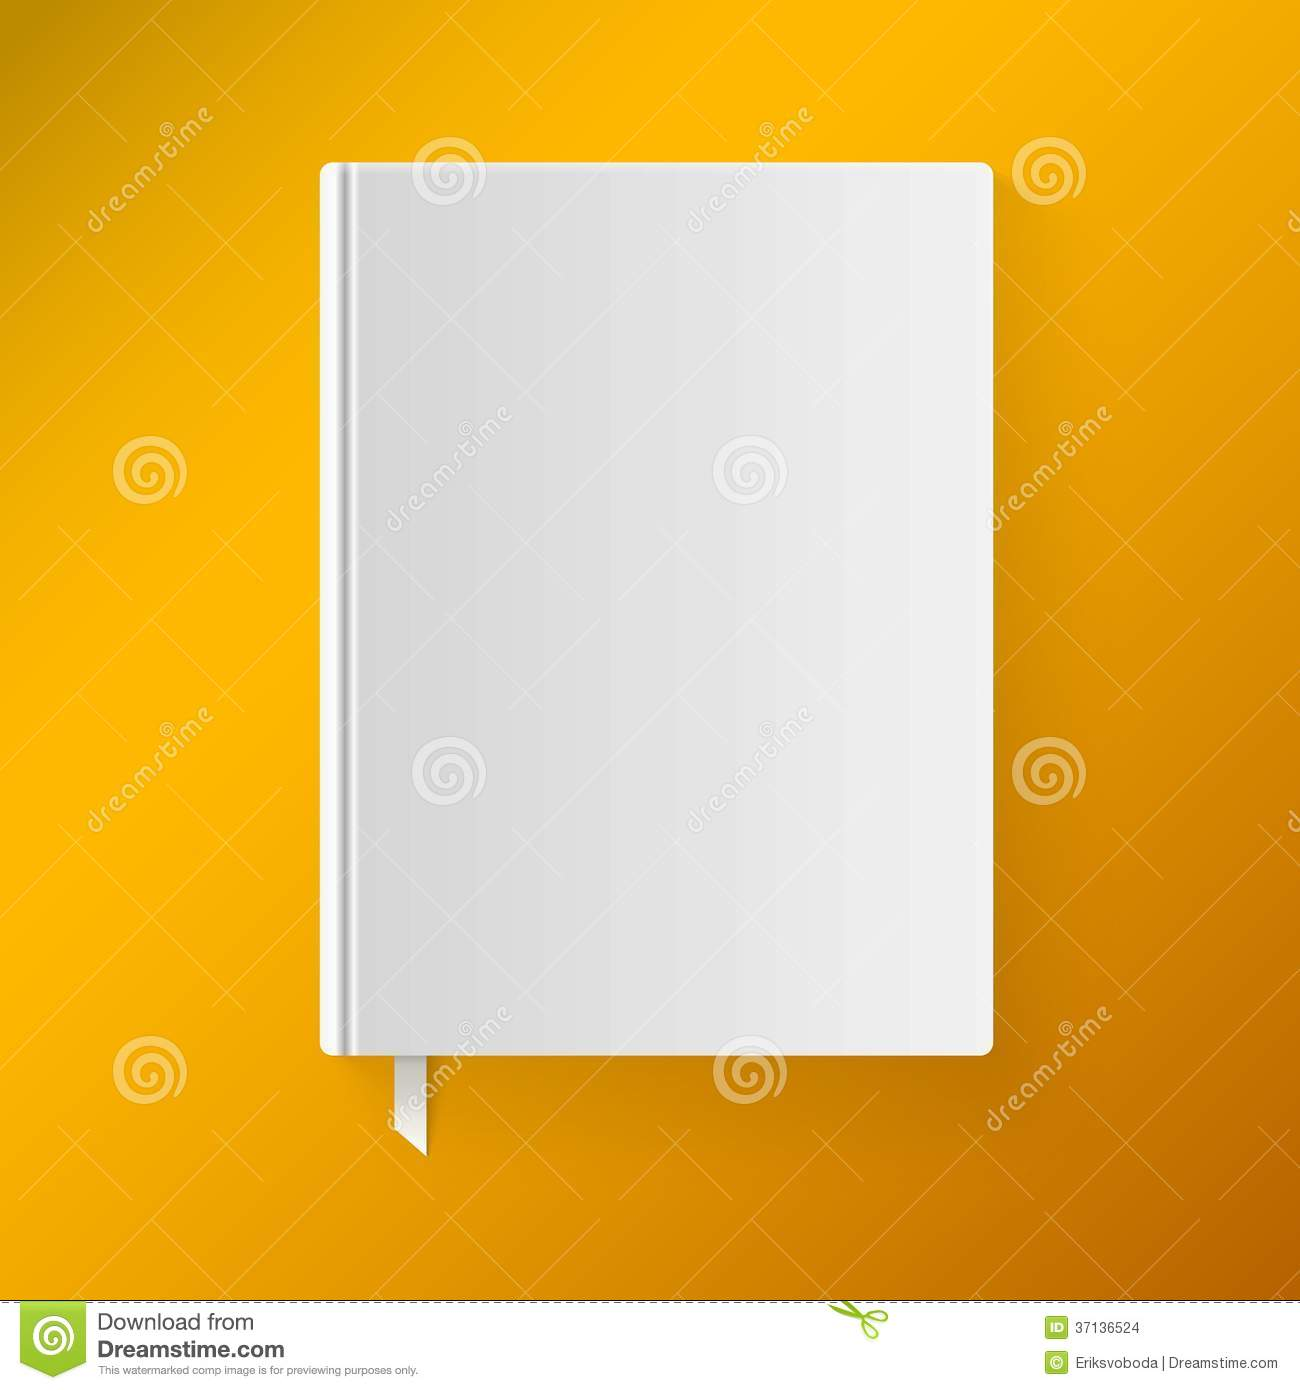 Blank Book Cover Vector Illustration Free : Blank book cover with a bookmark object for stock vector